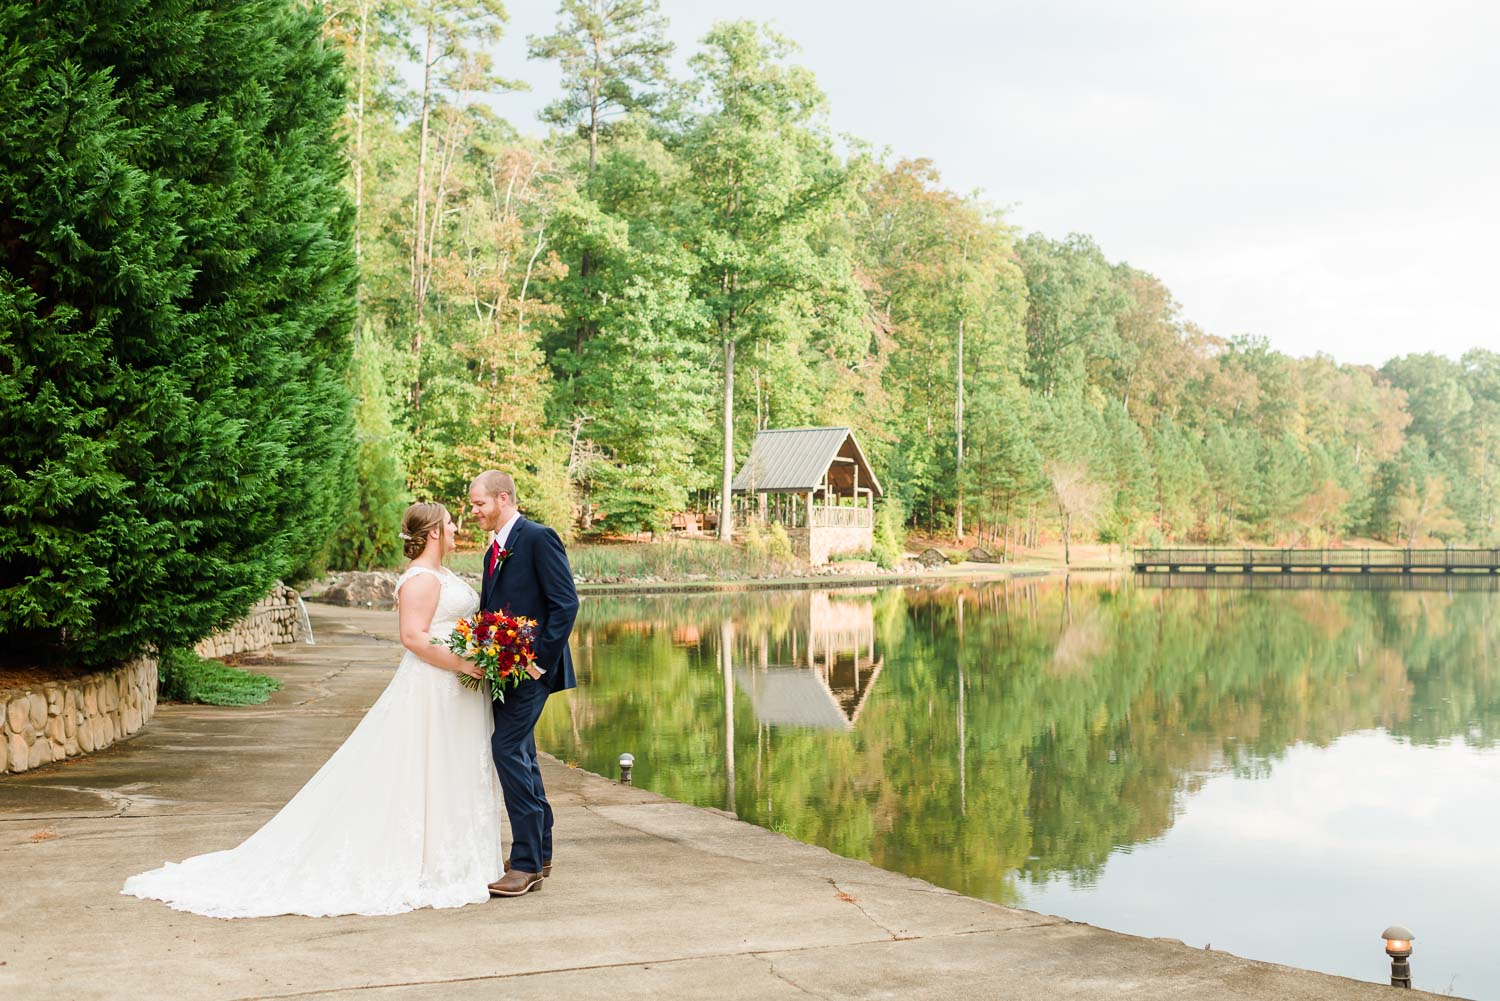 wide angle view of the pond with trees reflecting in the water and the bride and groom standing on the walkway at Indigo Falls in GA.